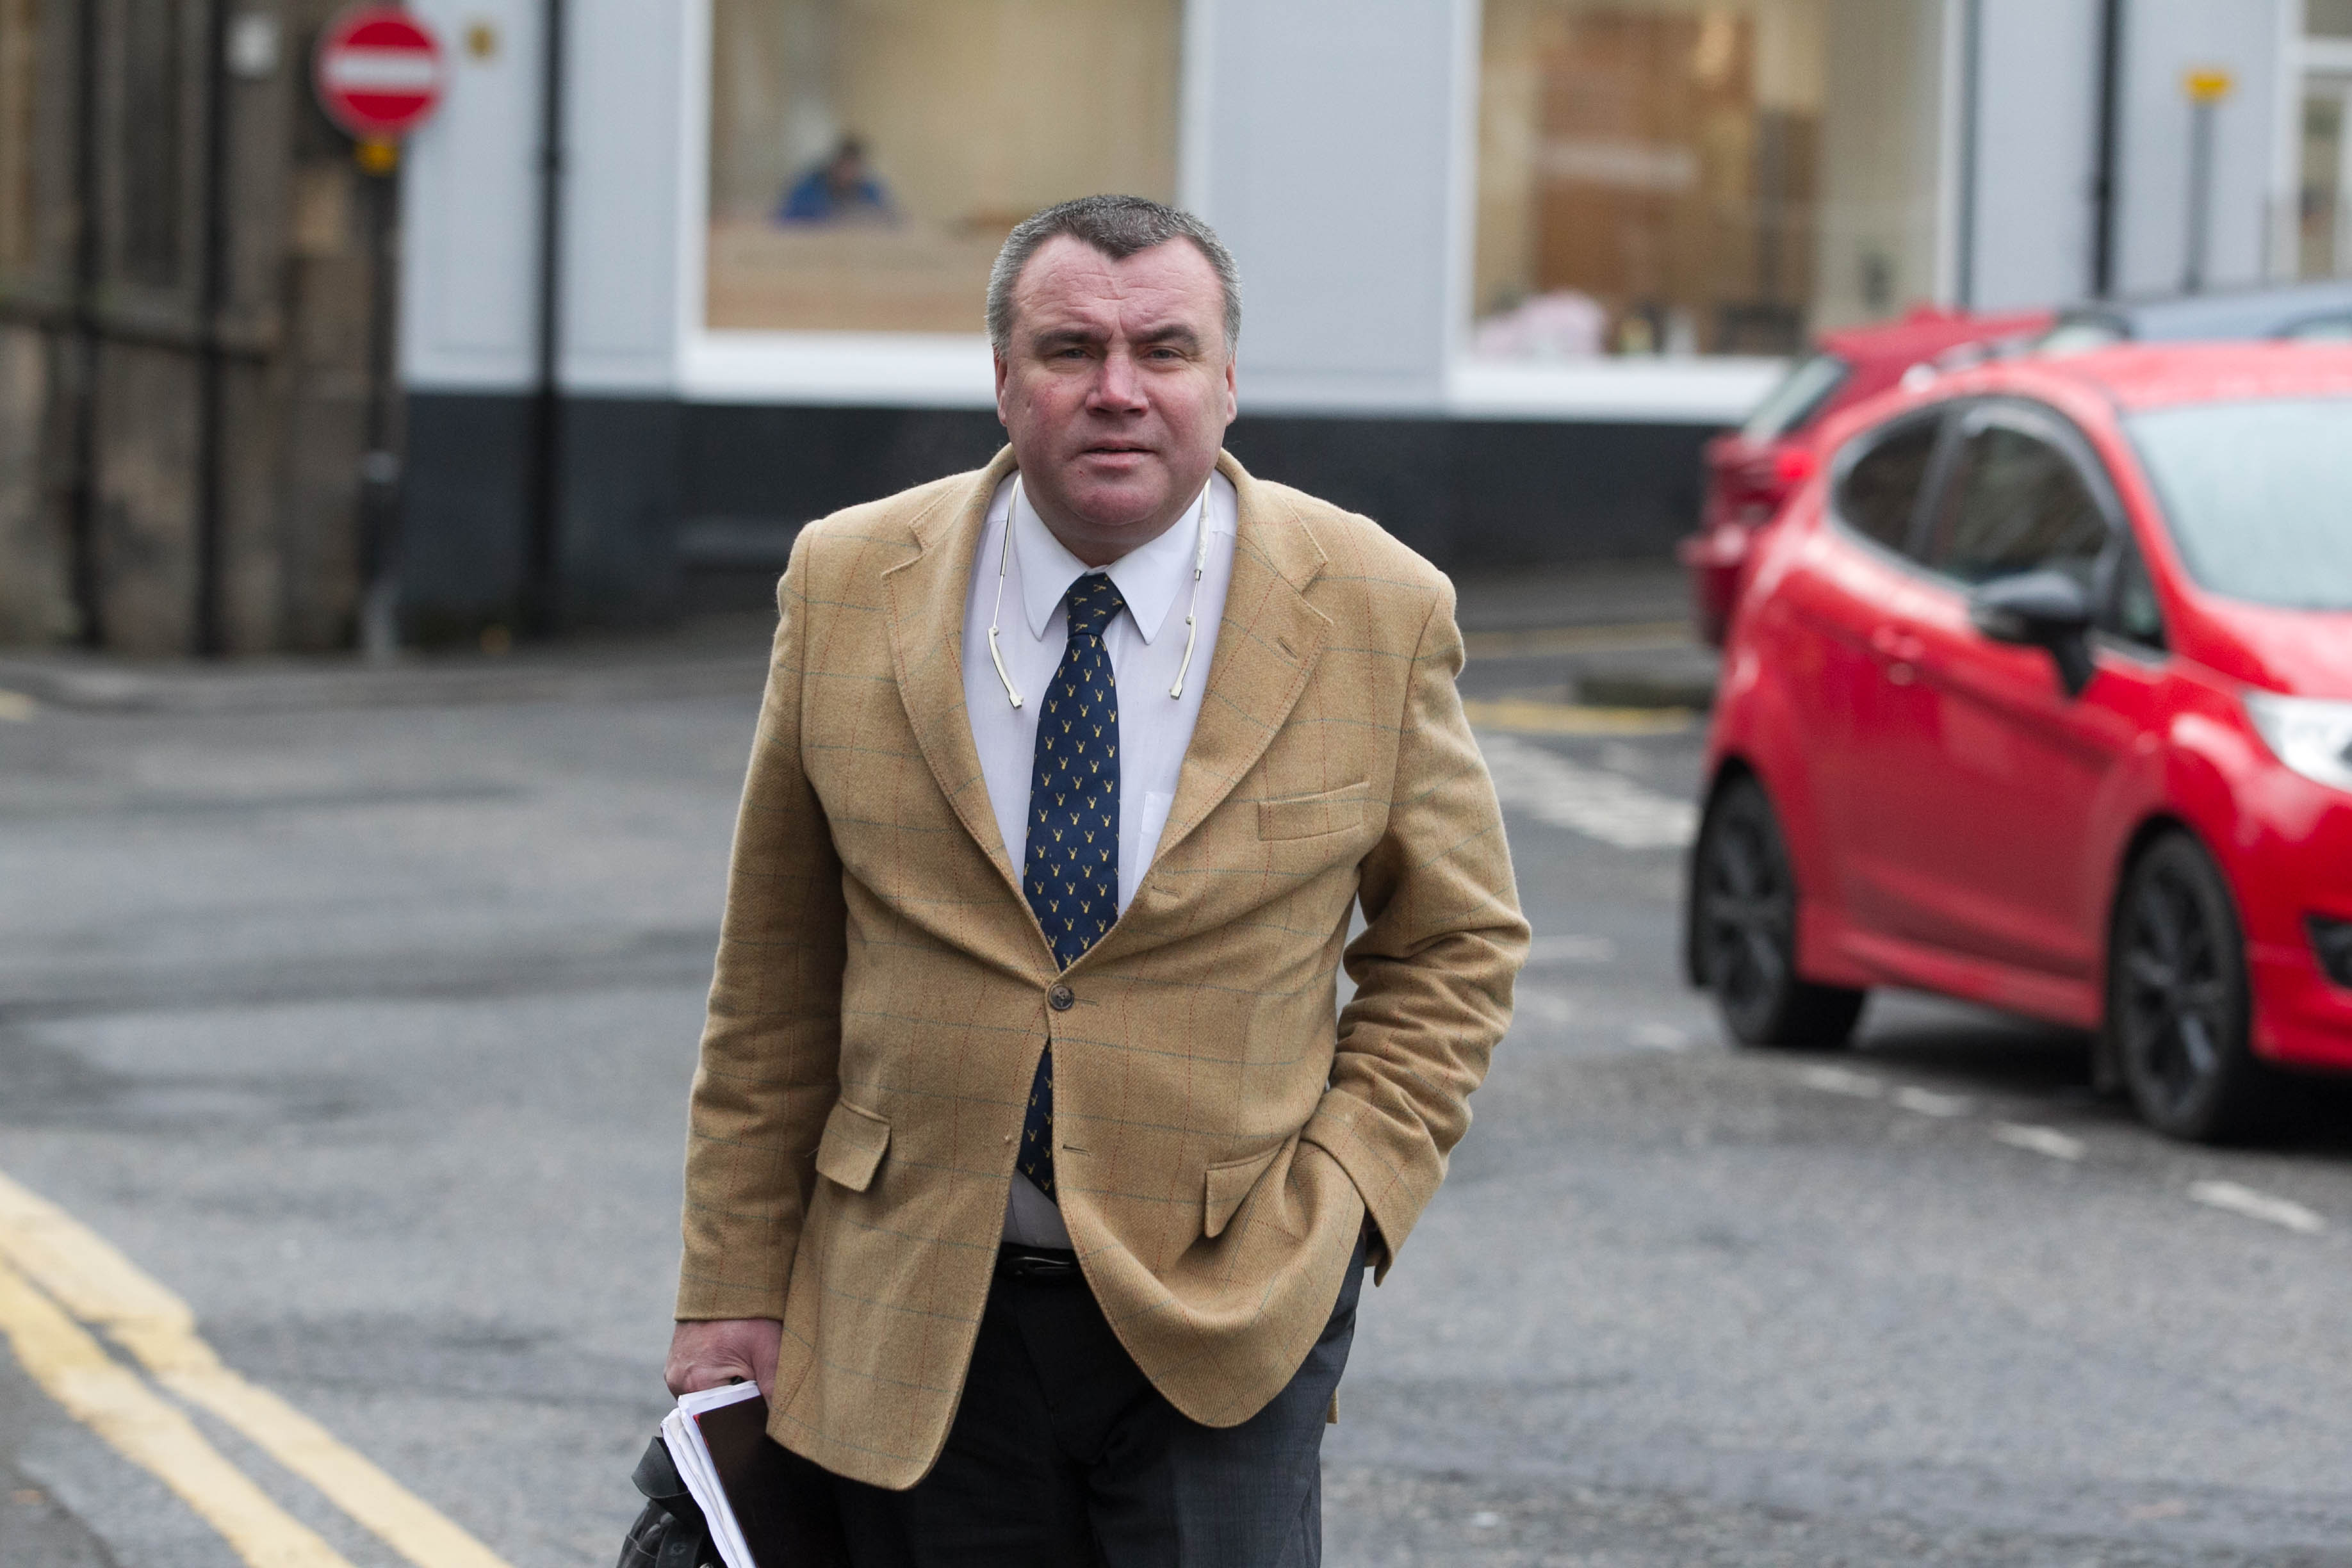 Buisnessman Euan Snowie appears at Stirling Sheriff Court.